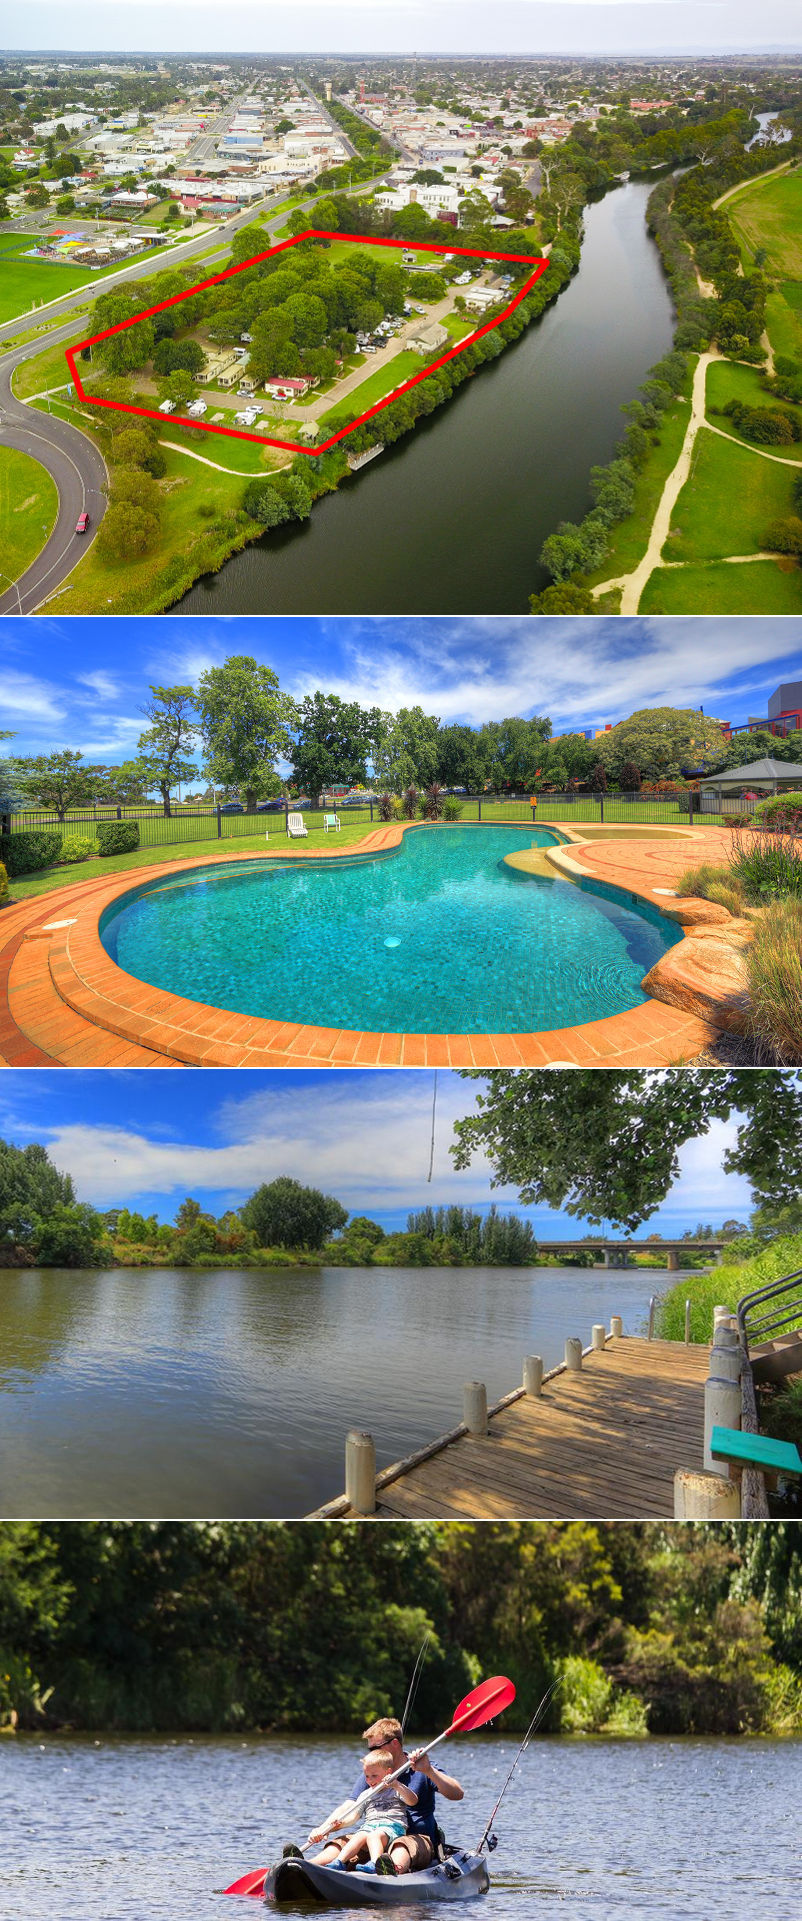 NRMA Bairnsdale Riverside Holiday Park - Grounds and facilities